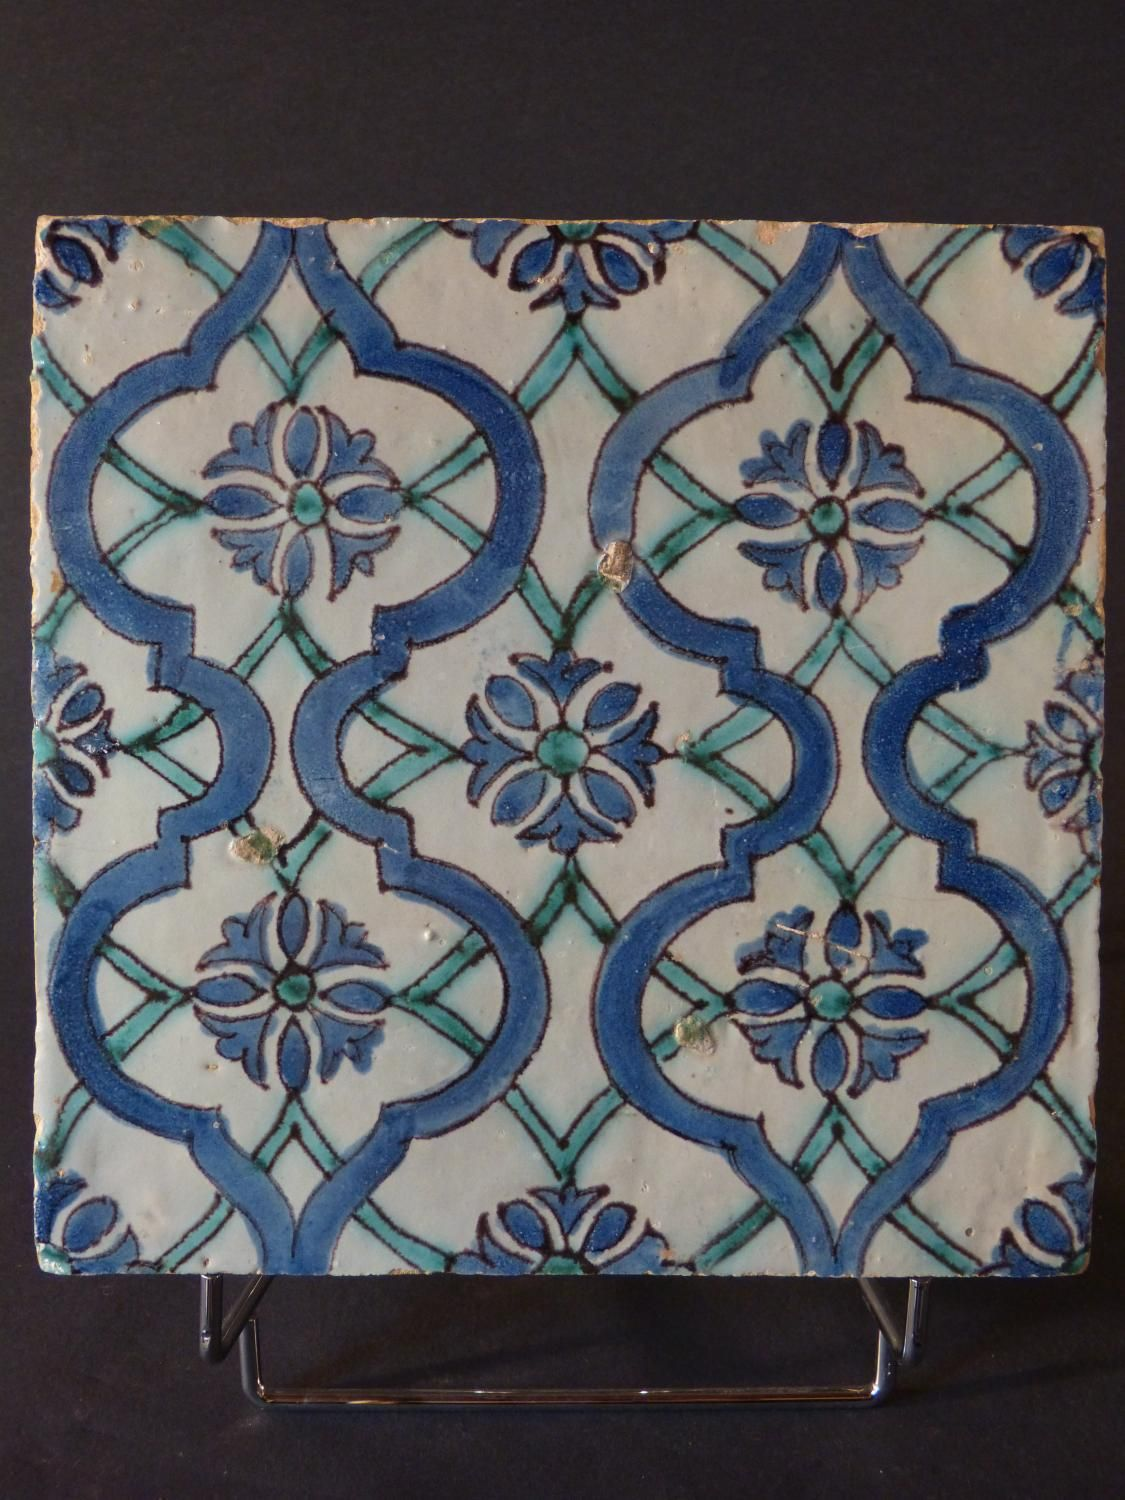 Antique for sale iran pottery fleur de lys ceramic persian vase antique for sale safavid persian ceramic tile with arabesques in earthenware ground stone tile pavement floor dailygadgetfo Images